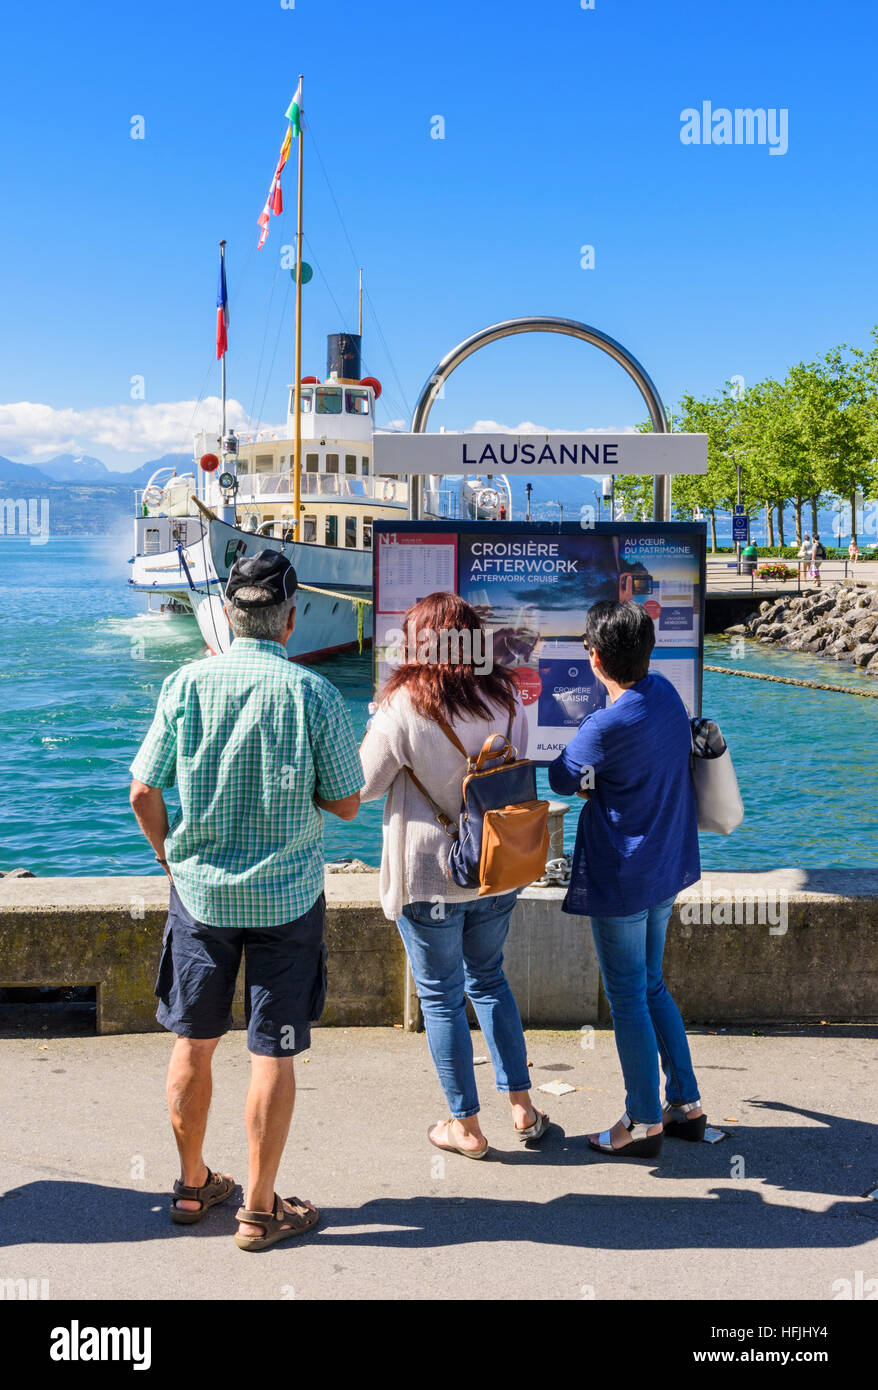 Tourists looking at a information board as a paddle steamer arrives in Lausanne, Vaud, Switzerland - Stock Image